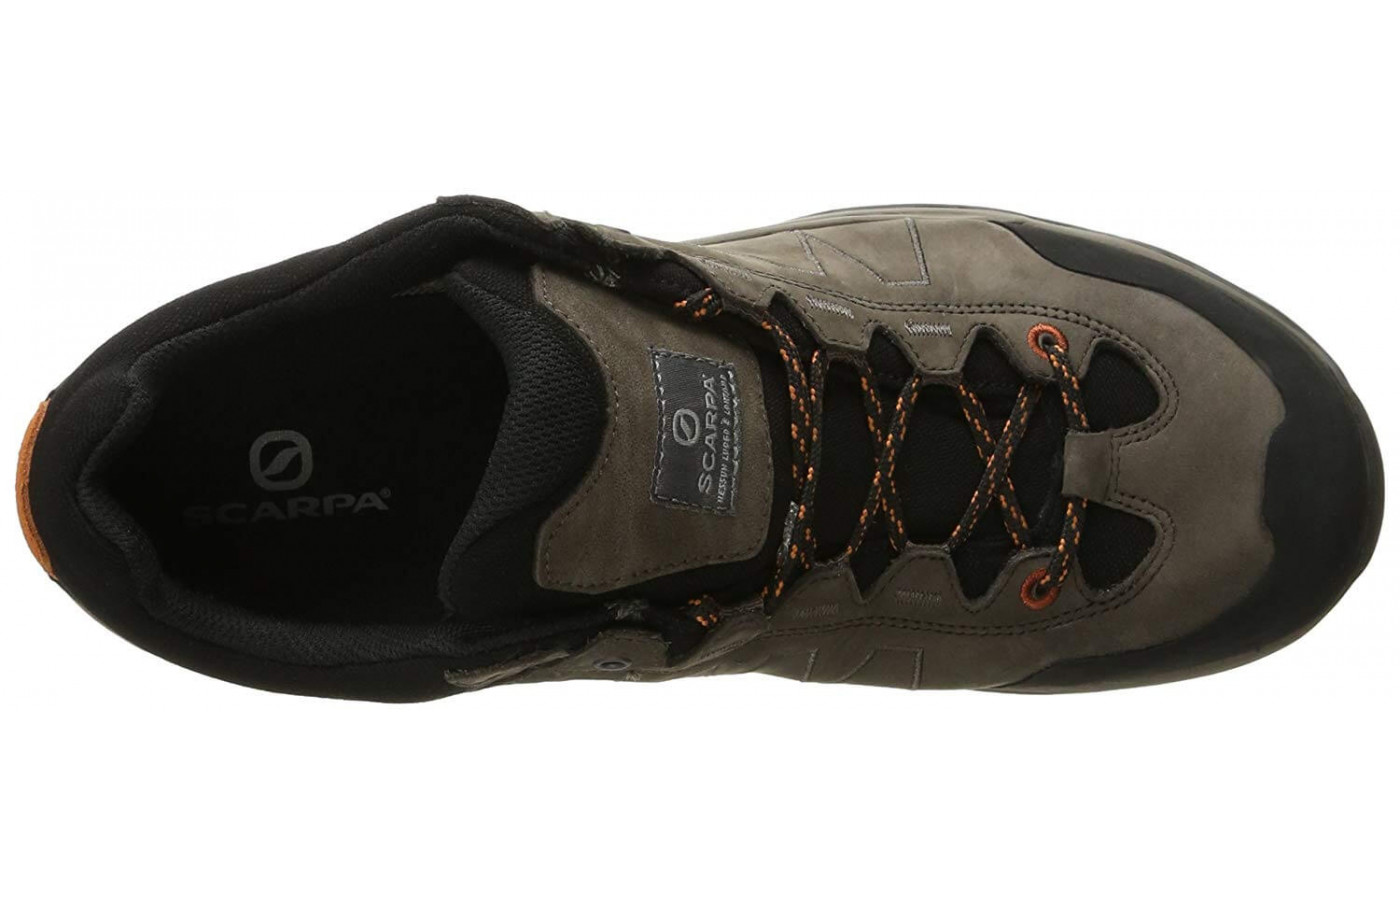 Full-grain nubuck leather makes up the Moraine Plus GTX's upper